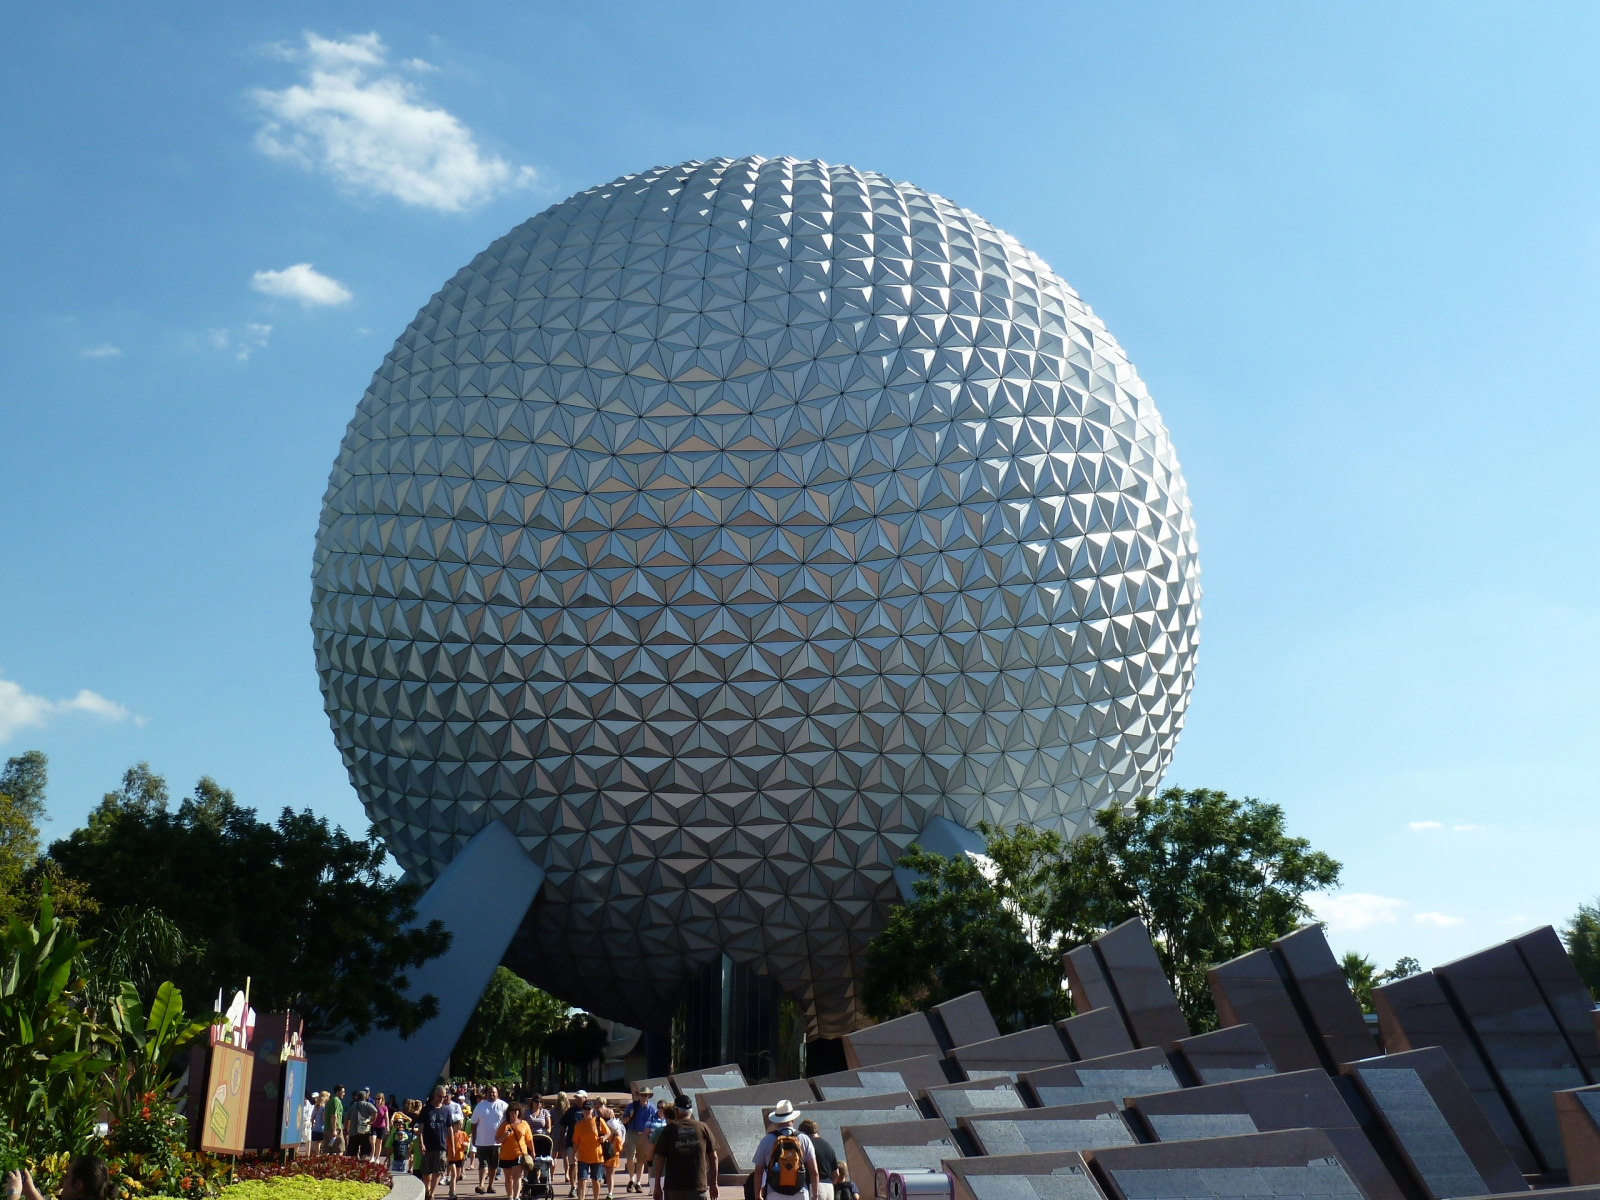 Spaceship Earth - 2011